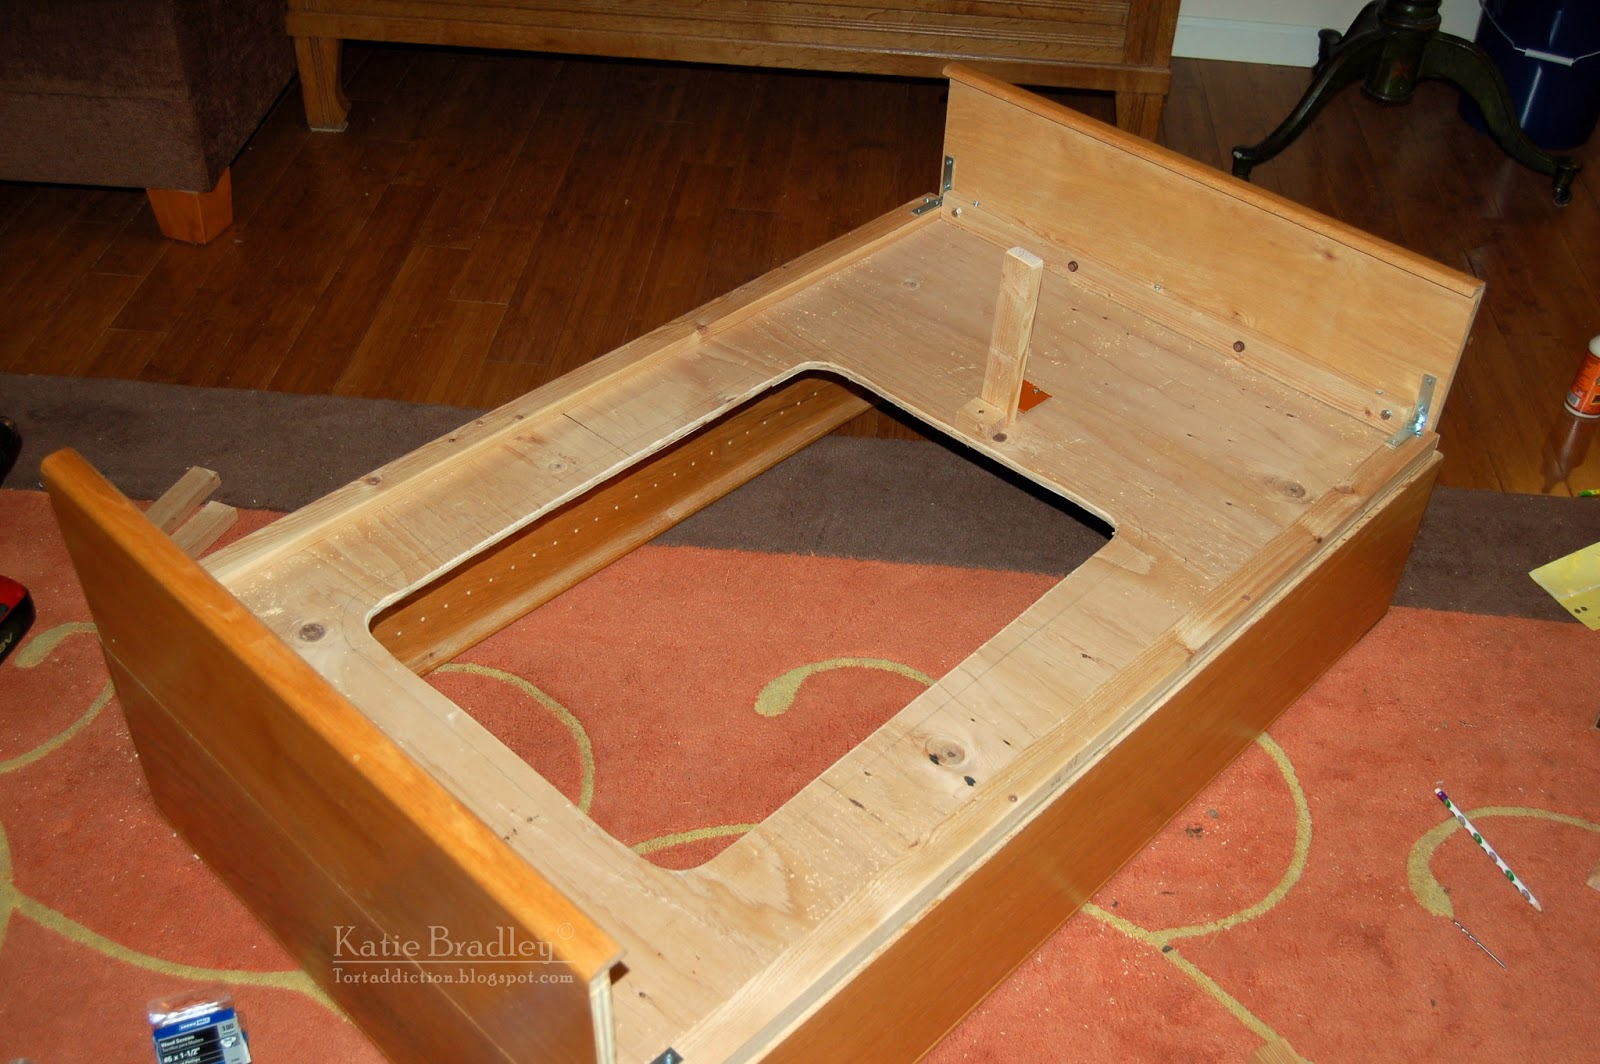 Tortaddiction how to build a tortoise table out of a bookshelf the tortoise table is upside down this is the bottom solutioingenieria Images